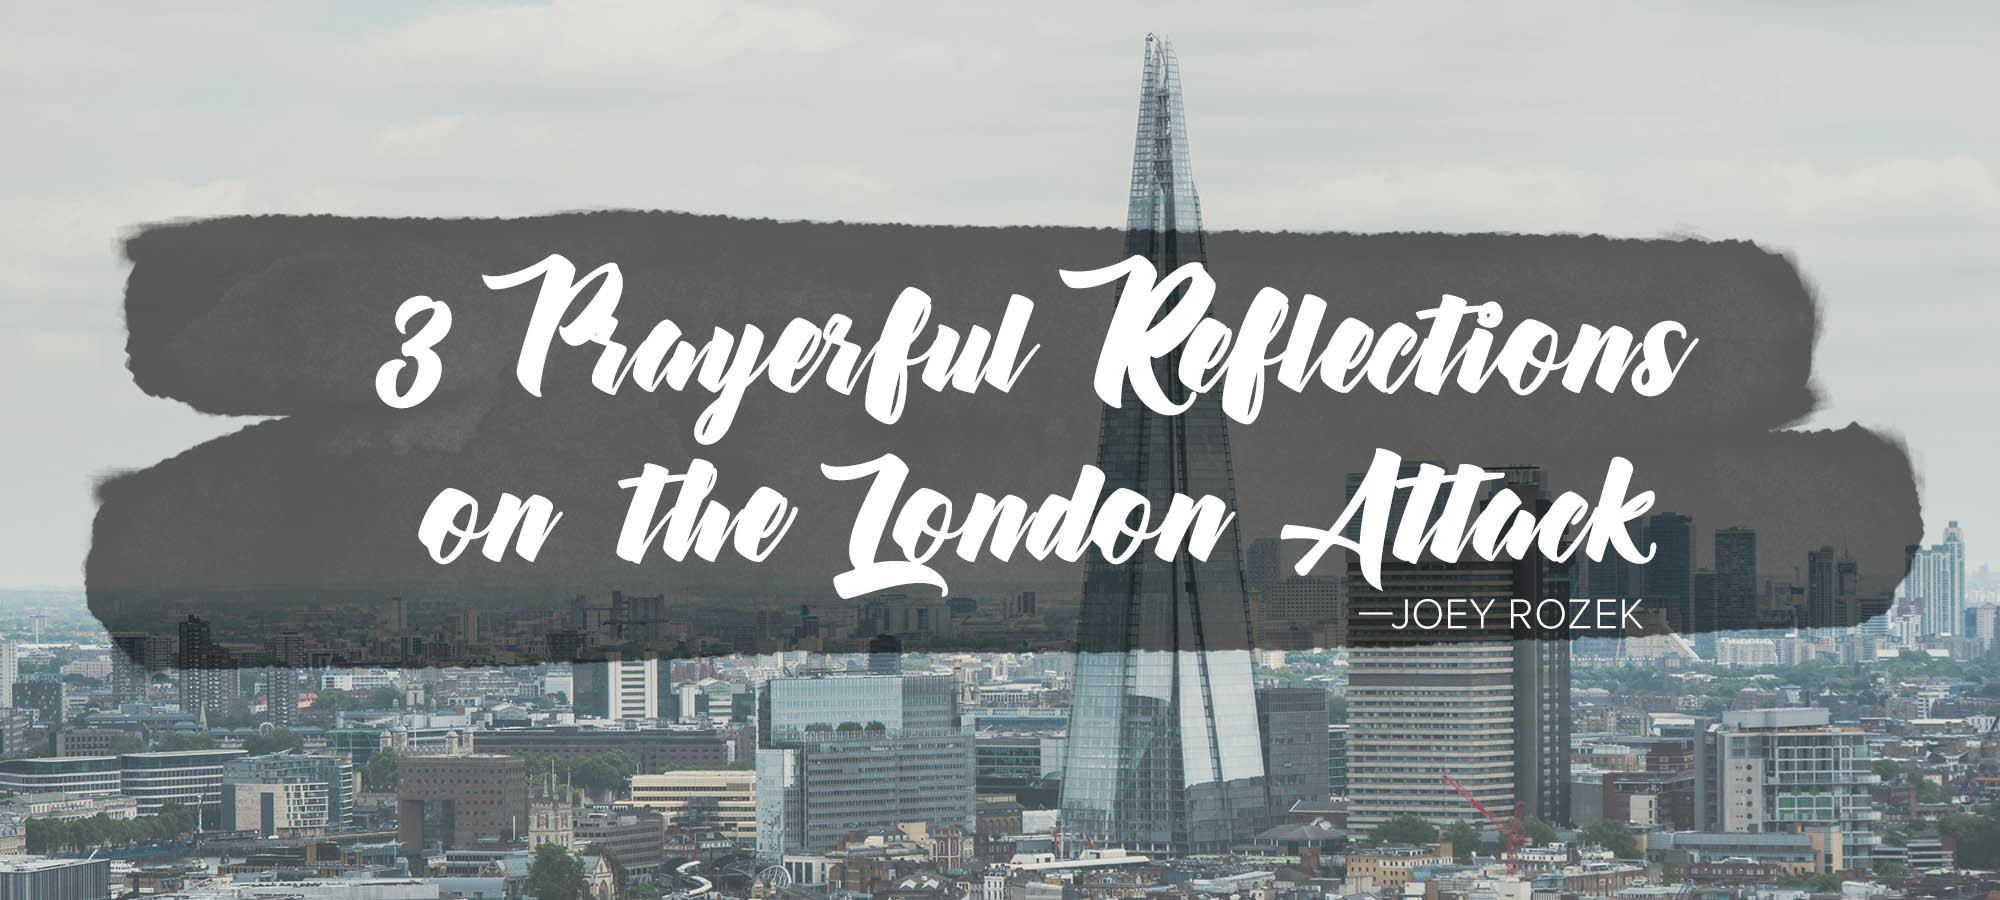 Three Prayerful Reflections on the London Attack